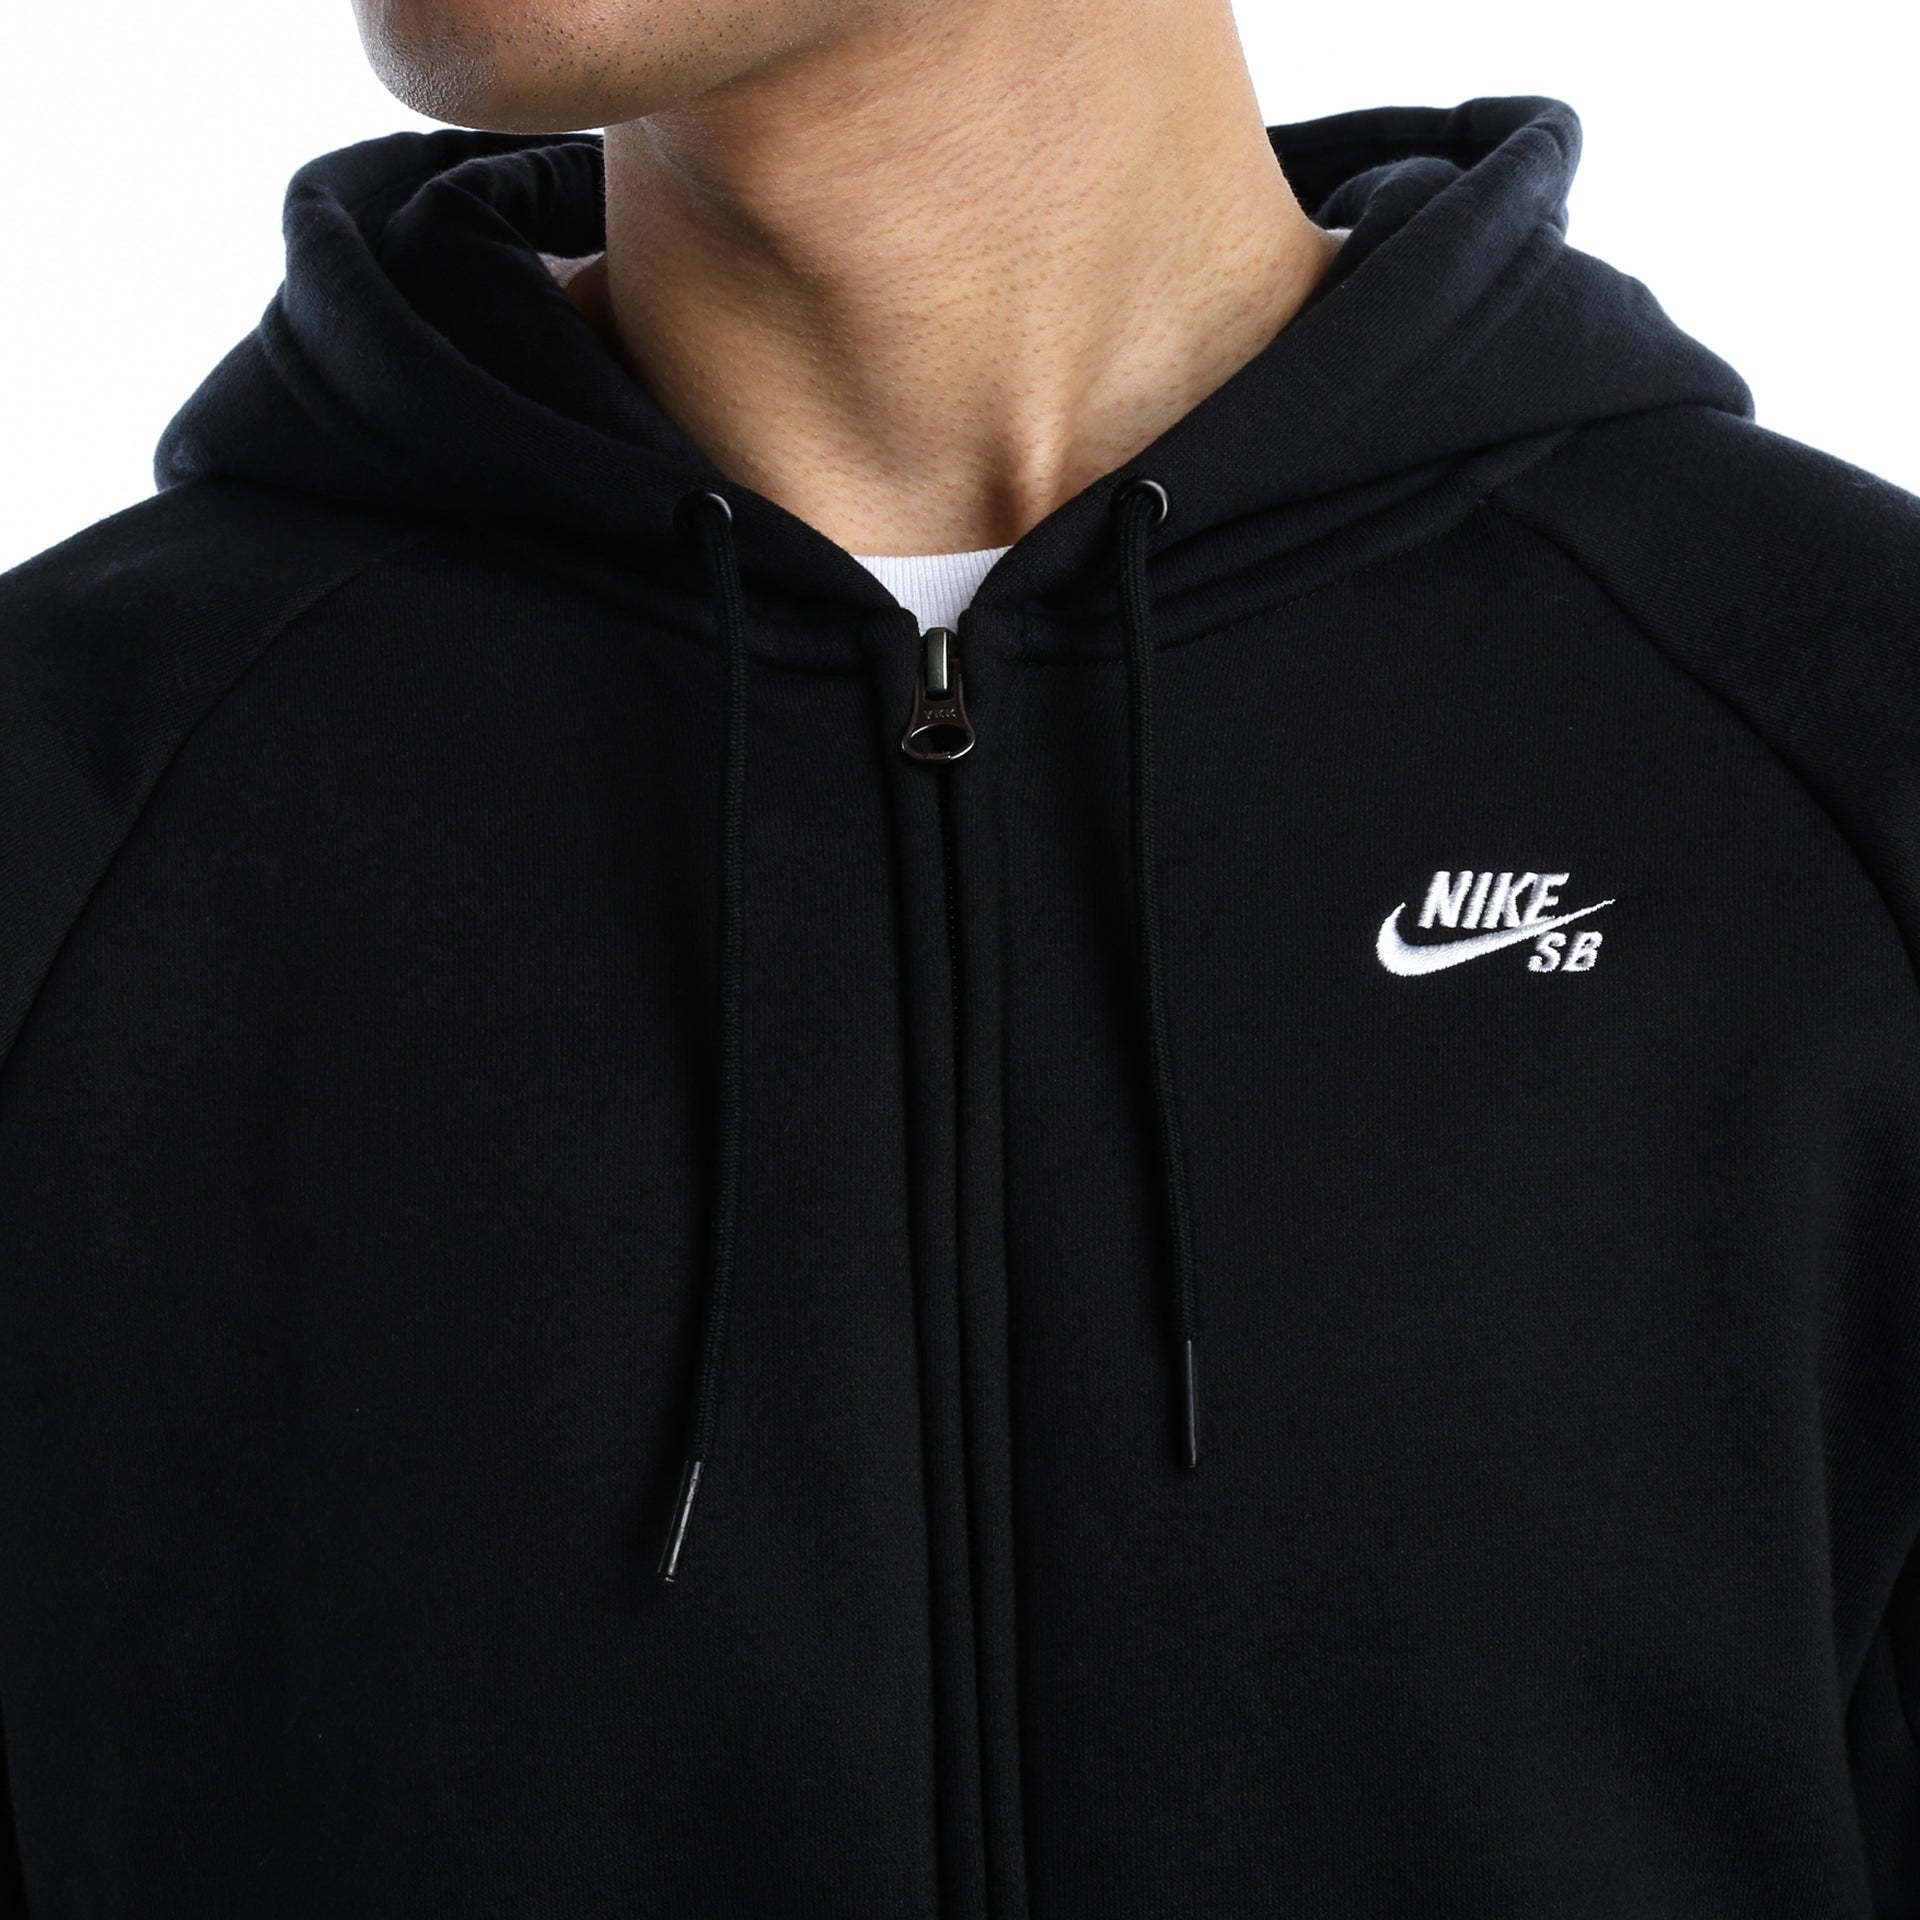 77adb262352e Nike SB Icon Full-Zip Hoodie - Black - New Star